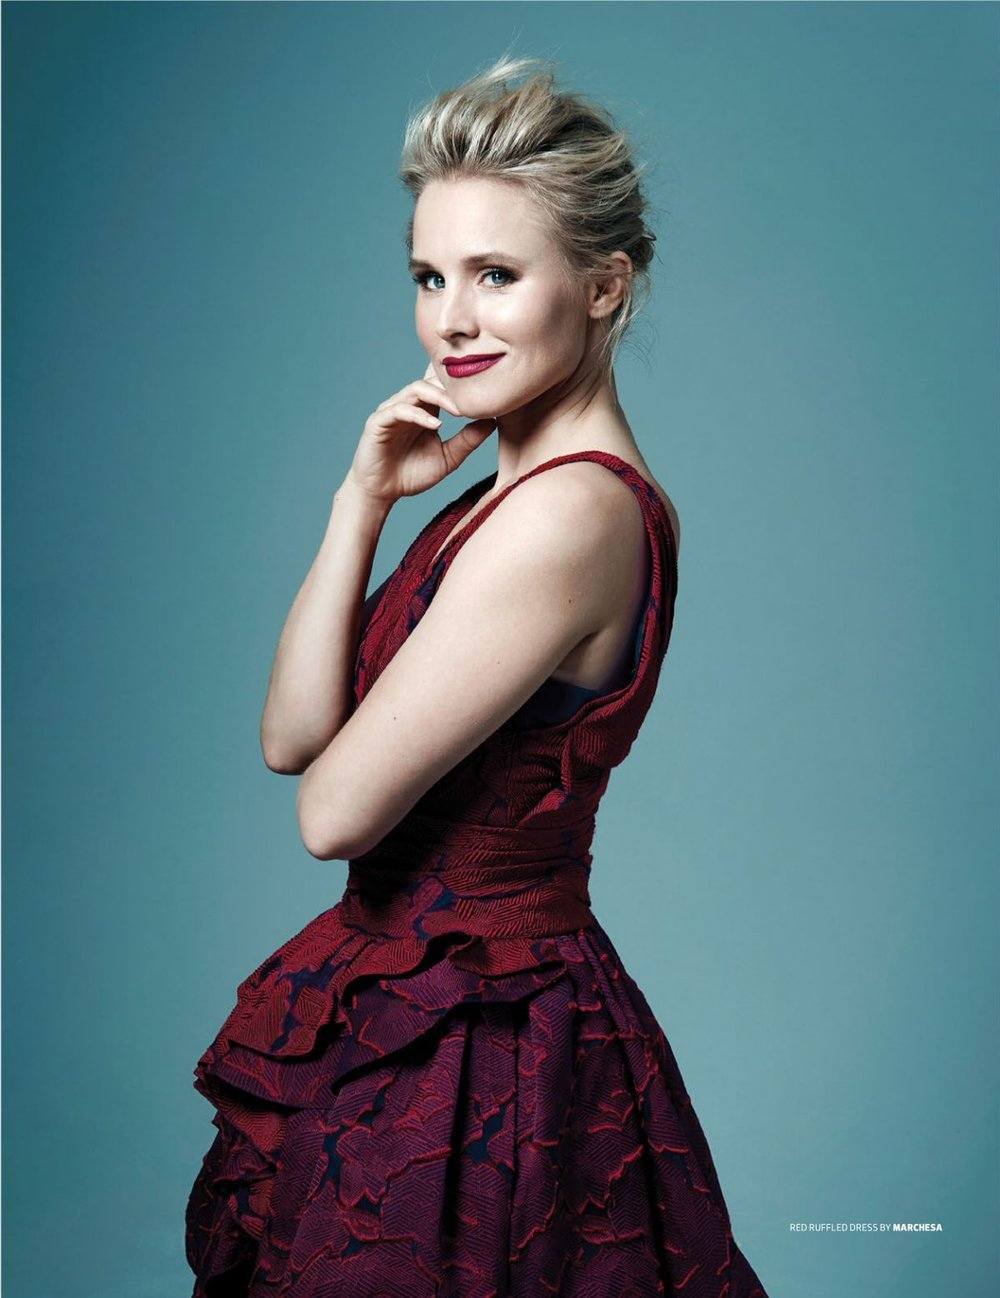 kristen-bell-in-emmy-magazine-issue-no.8-2016_2.jpg